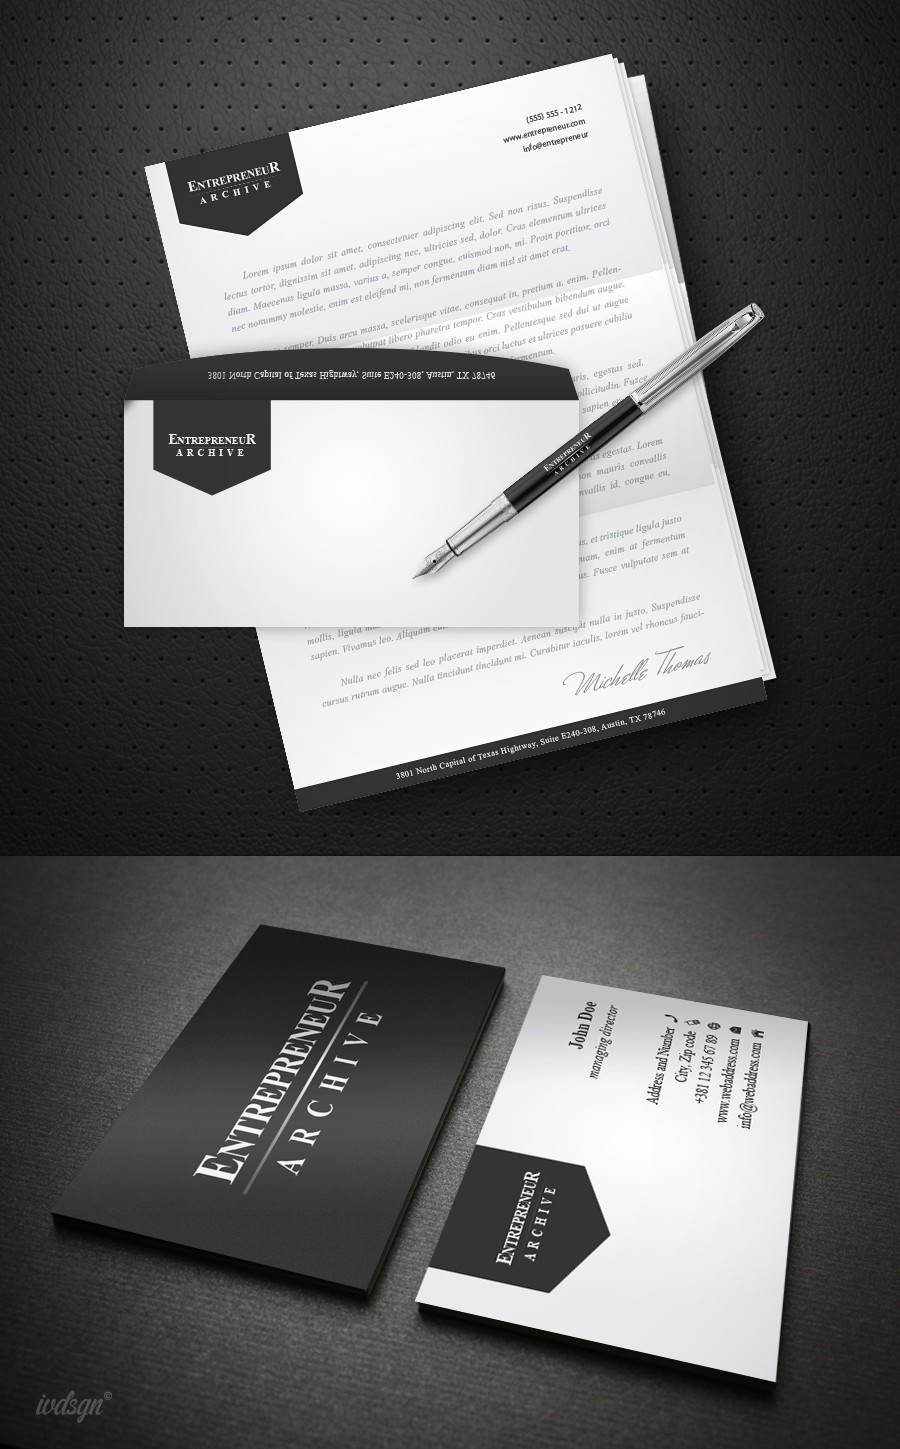 Entrepreneur Archive needs a new stationery